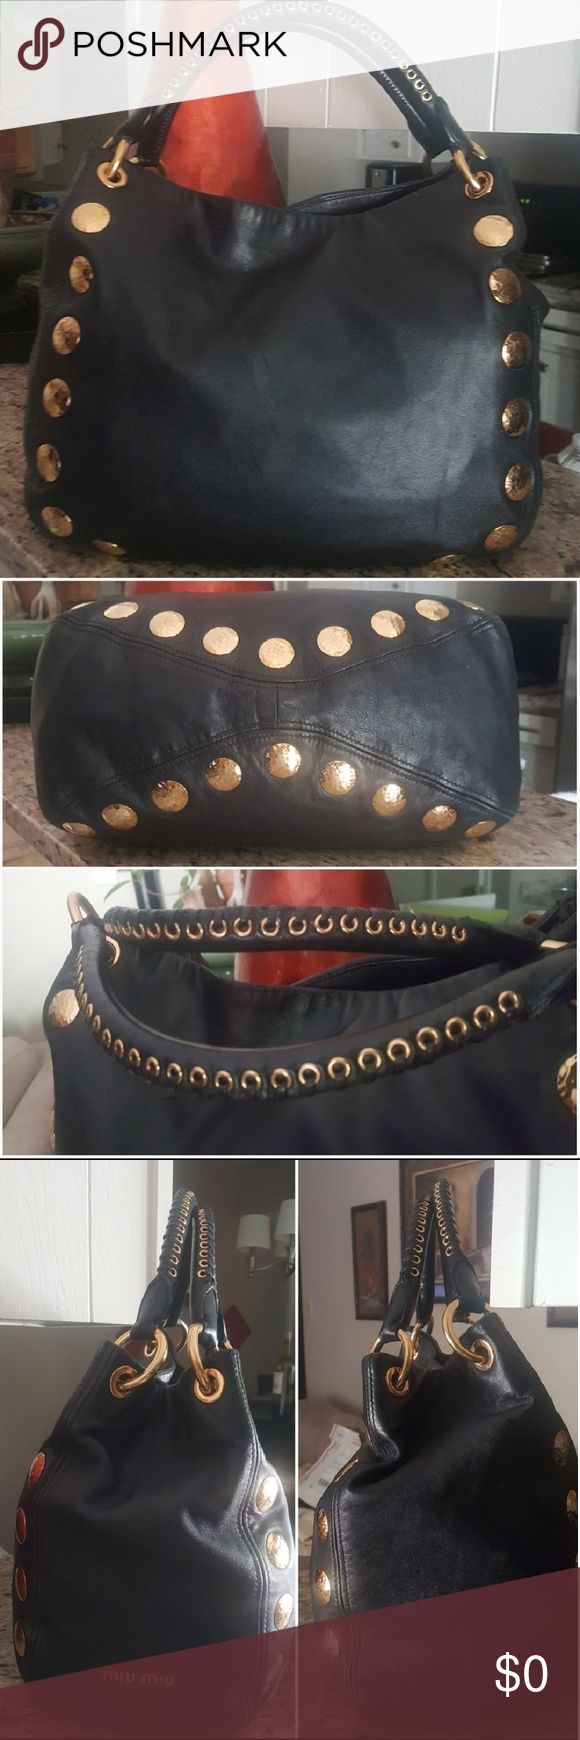 Miu Miu Lambskin Gold Studded Grommet Bag Authentic Miu Miu bag. Just  received this beauty and I love it.😍 Not ready to let it go just yet e1c91f1b833a2